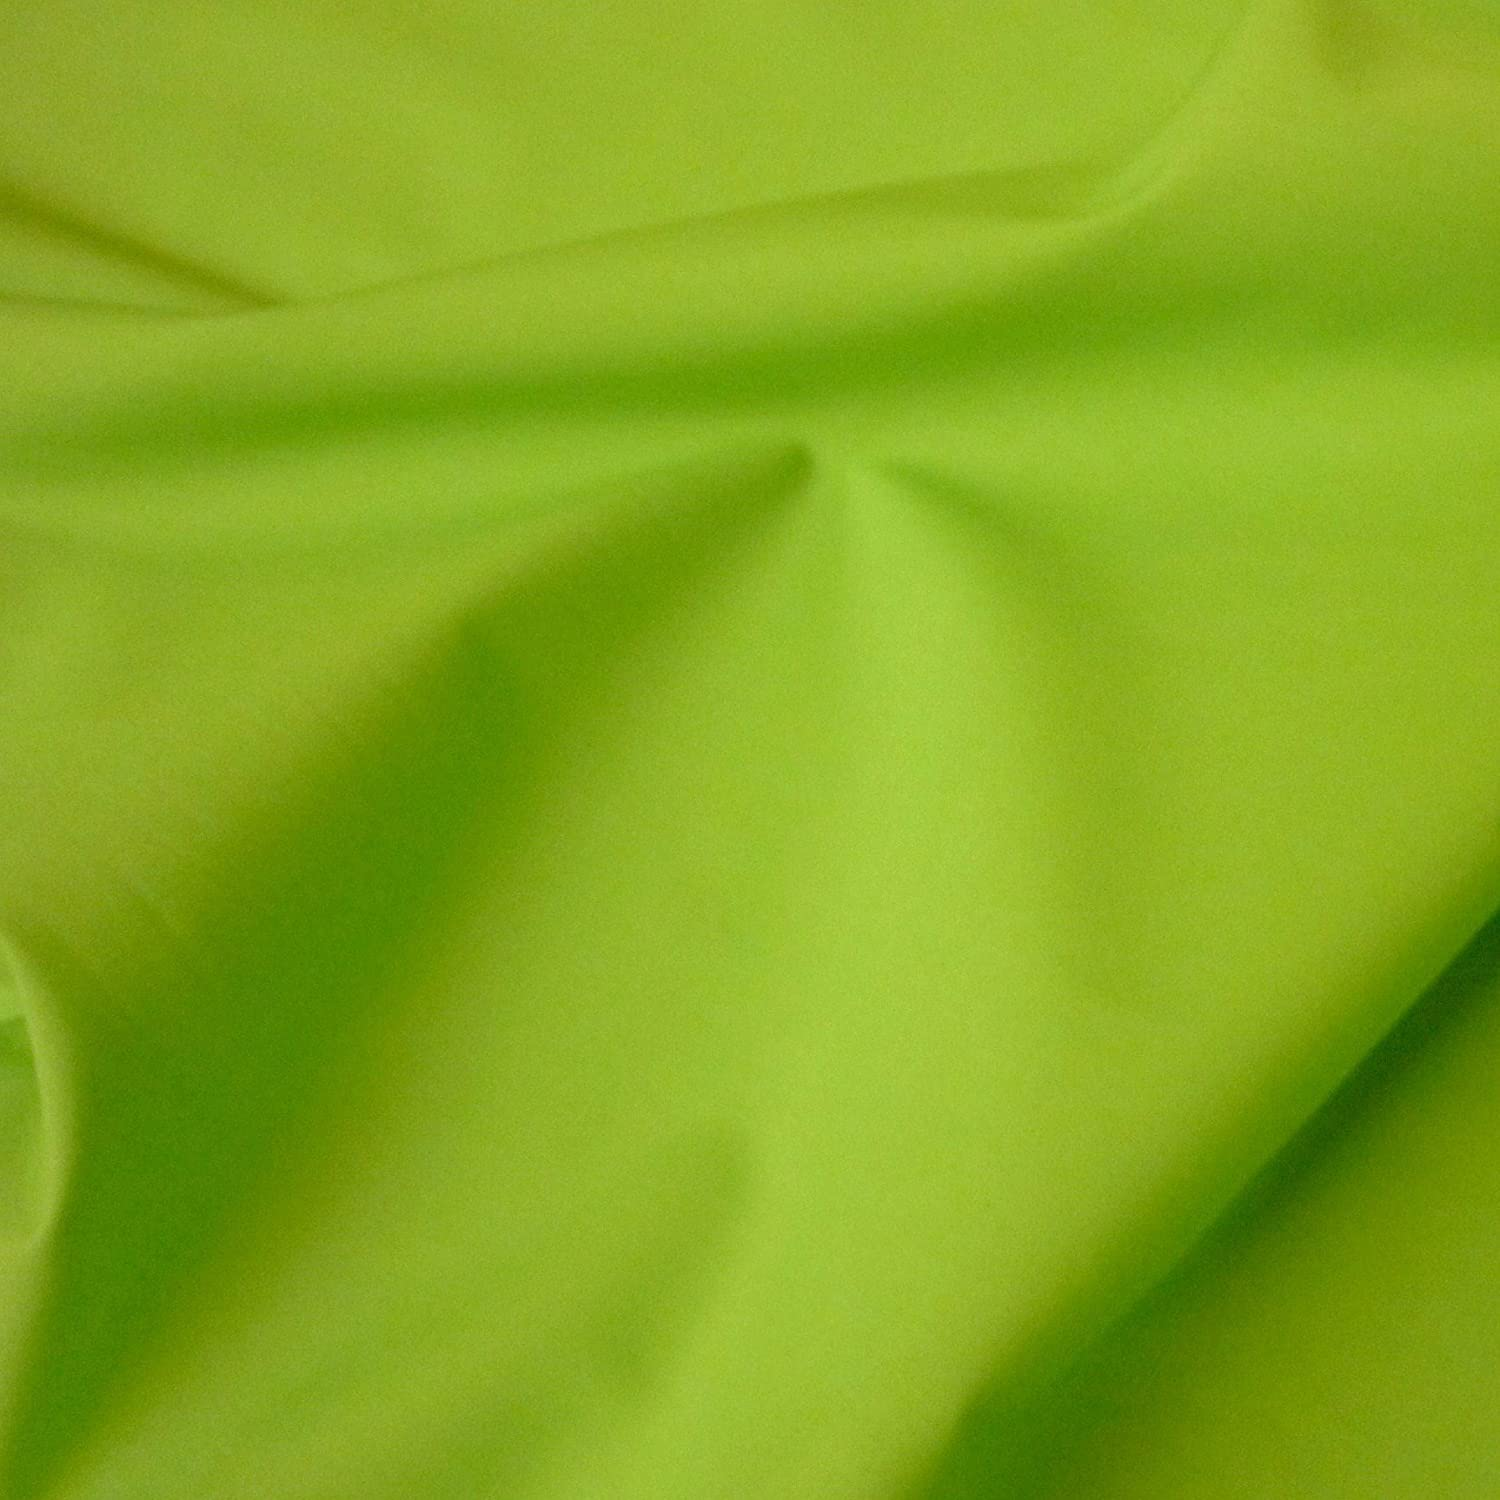 Green Fabric Www Pixshark Com Images Galleries With A